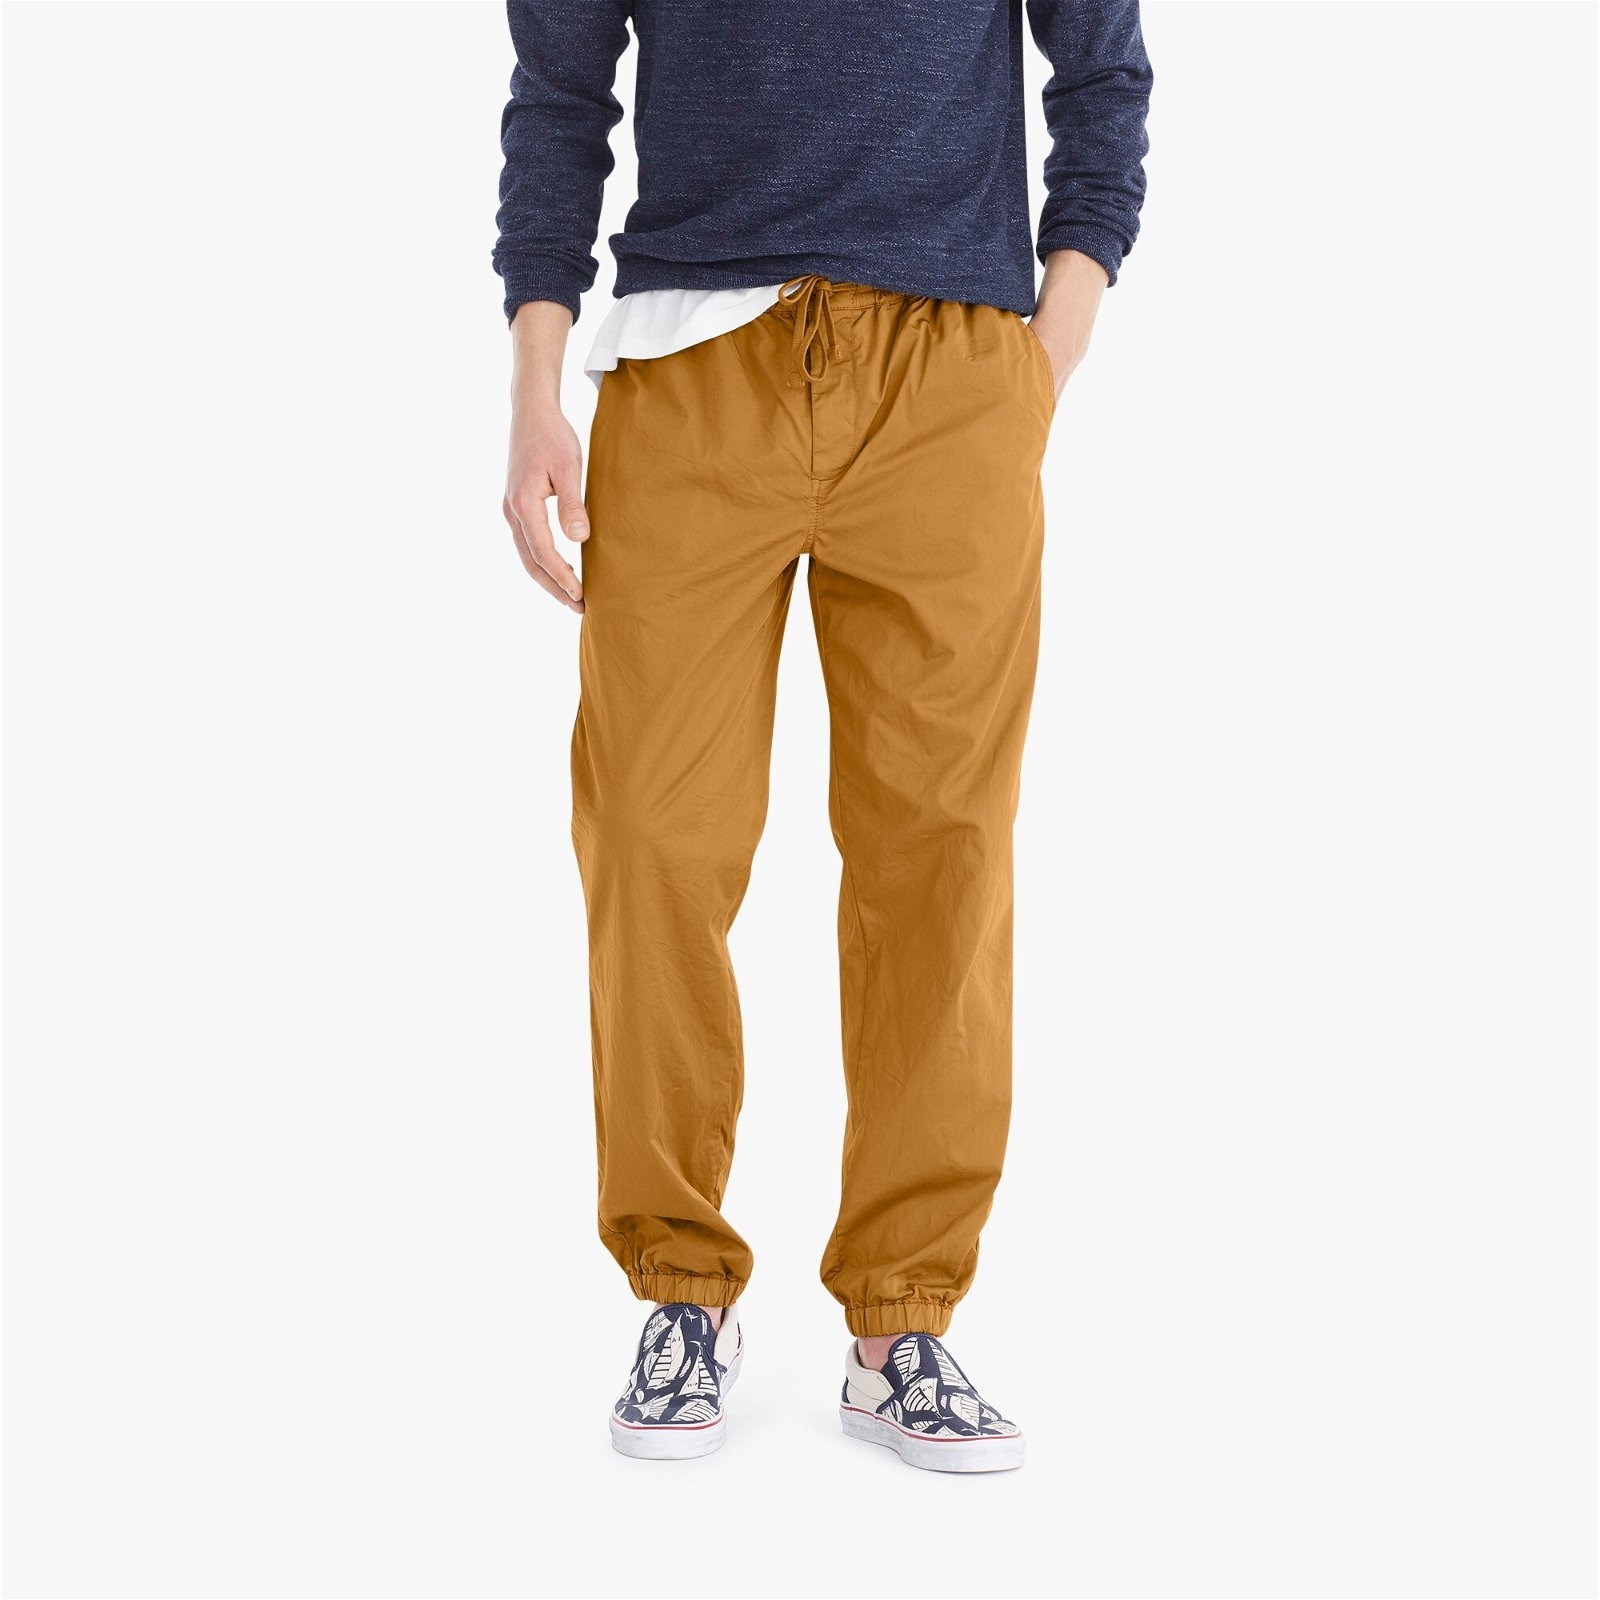 Drawstring pant in garment-dyed stretch twill